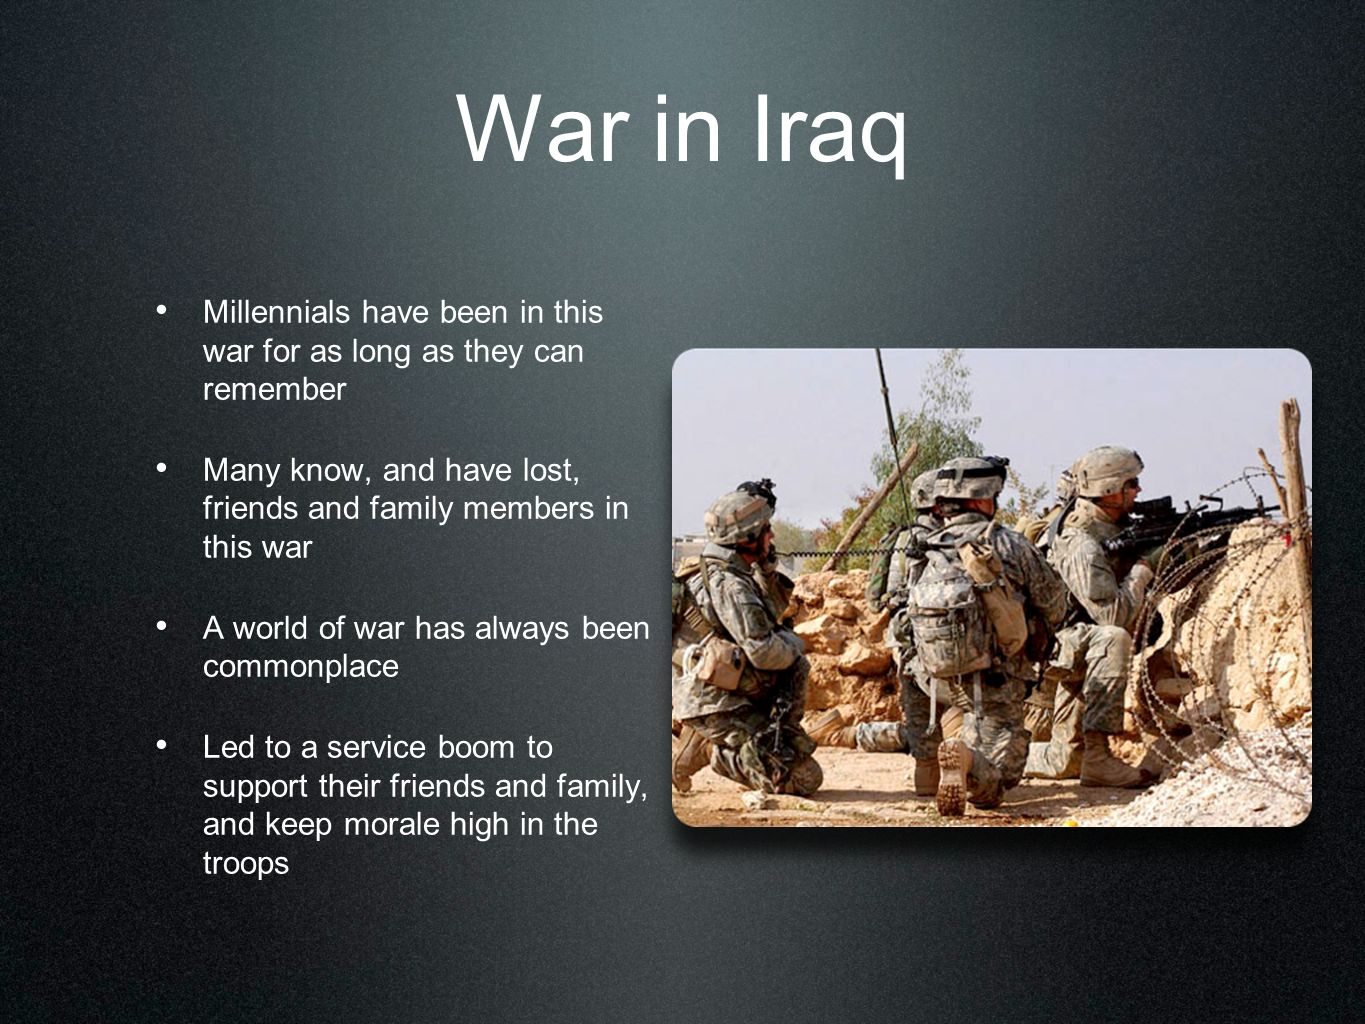 War in Iraq Millennials have been in this war for as long as they can remember. Many know, and have lost, friends and family members in this war.